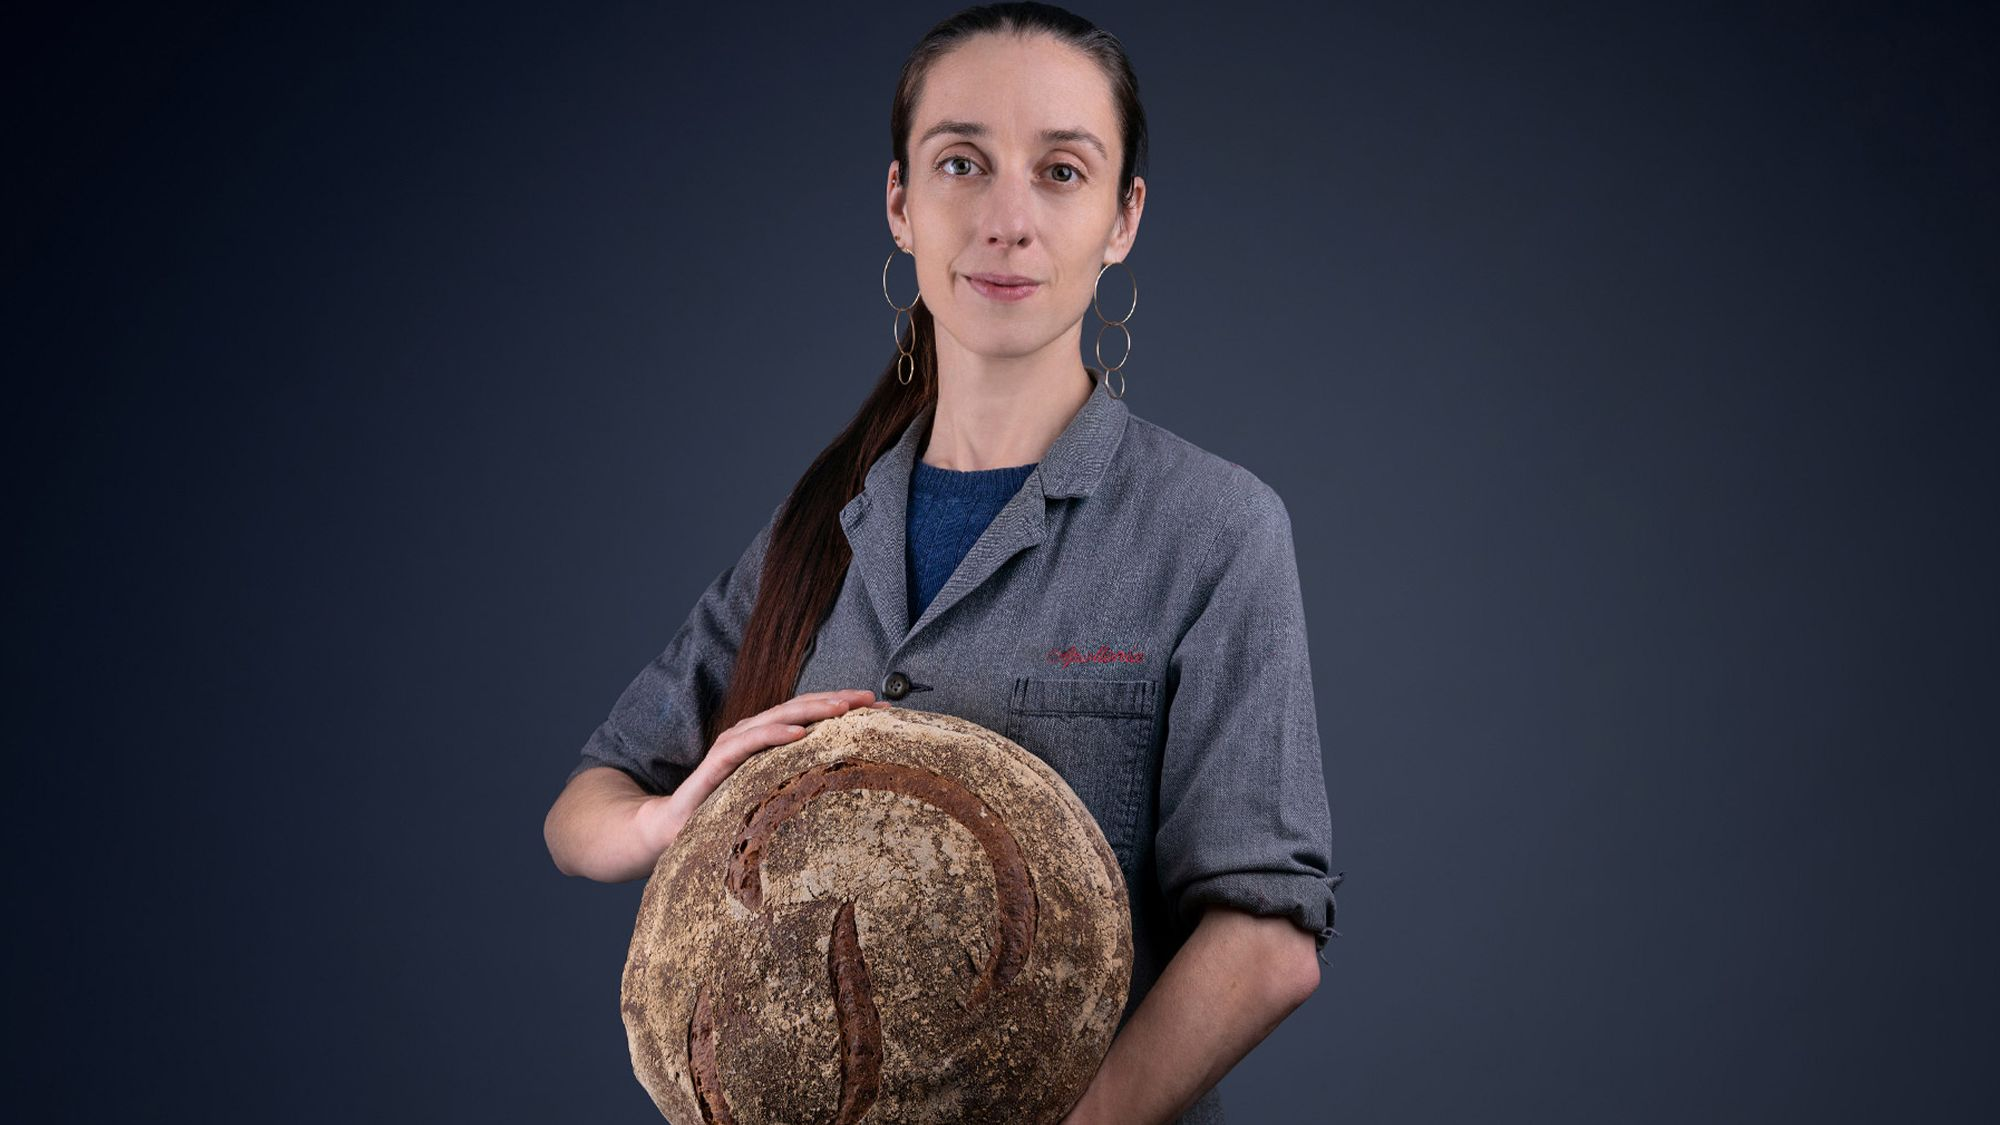 Learn the Art of Bread Making With Master Baker Apollonia Poilâne